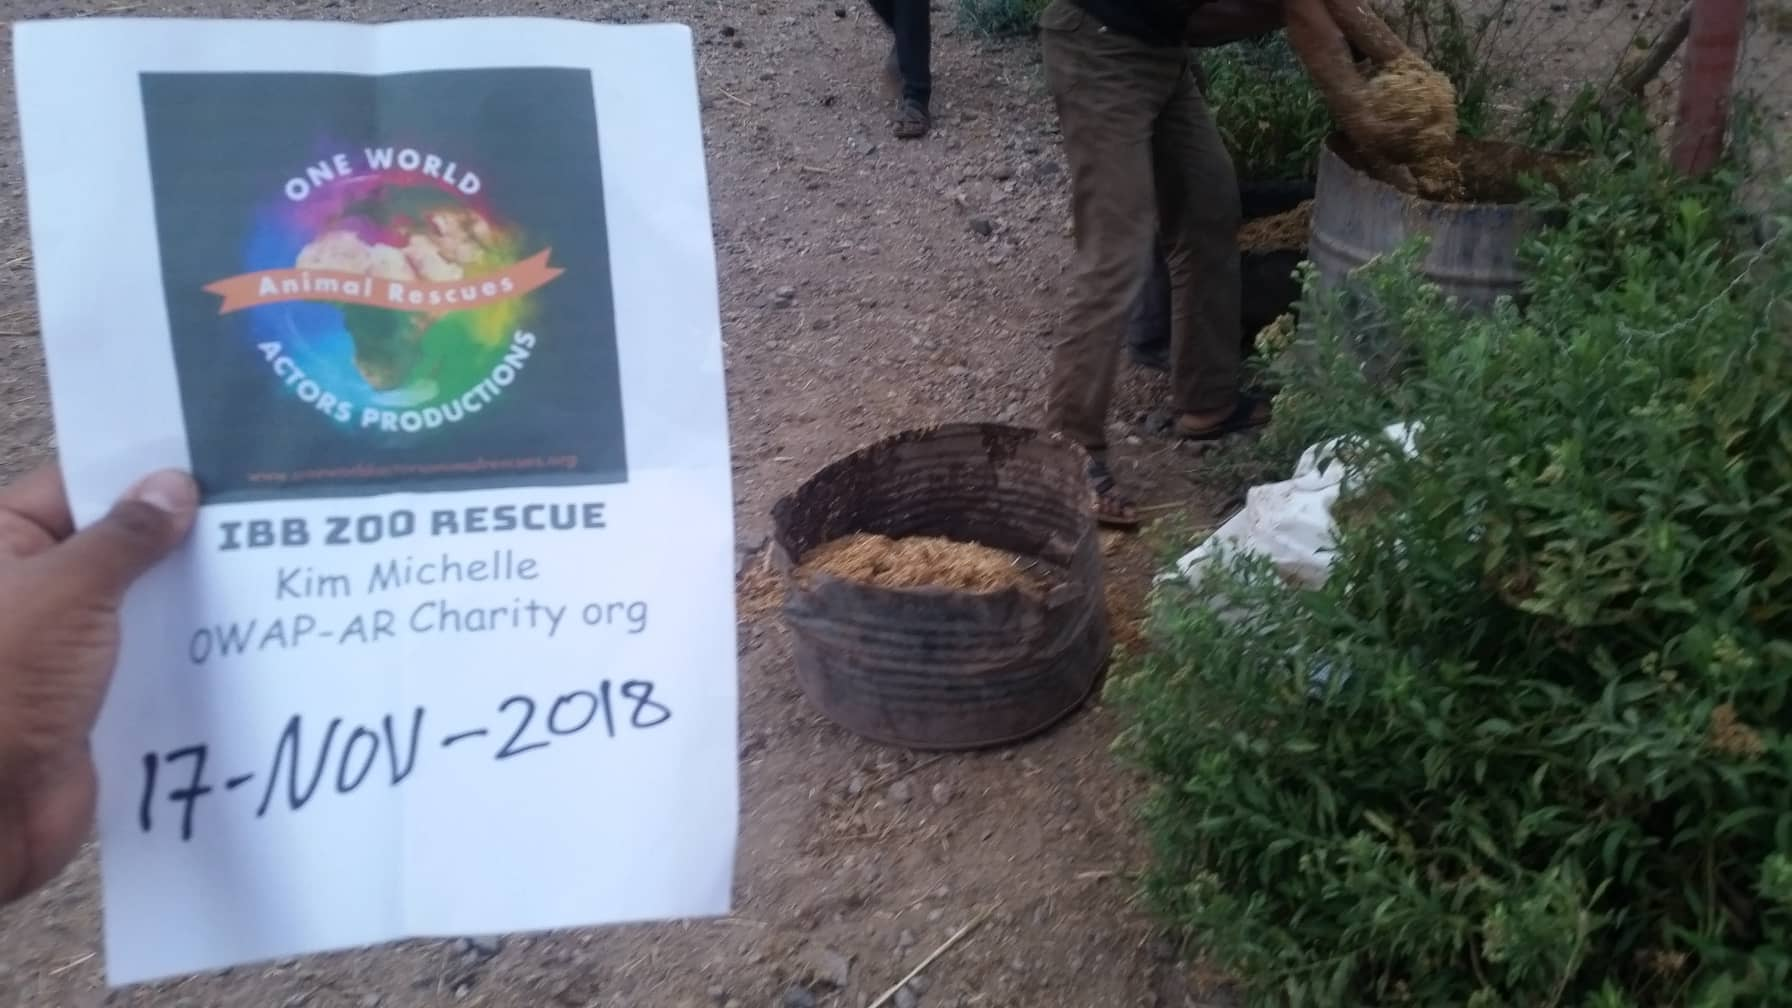 ibb zoo yemen rescue by OWAP-AR Hisham special feed for ibb horses delivery today 17 NOV 2018 with our sign.jpg